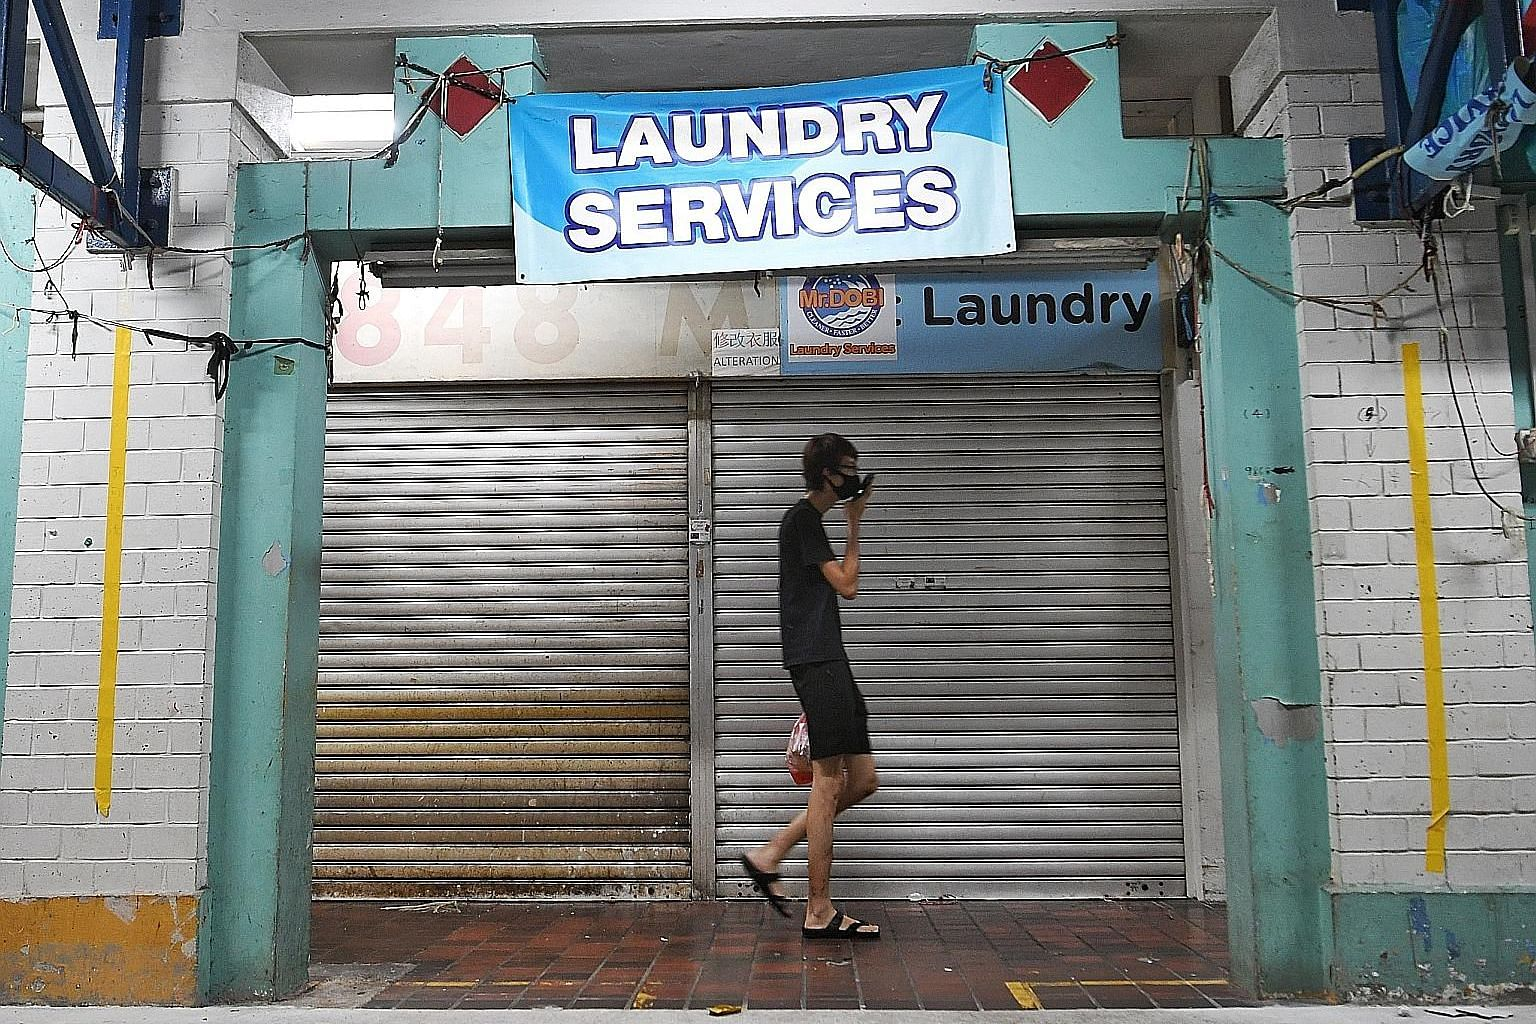 Mr Dobi Laundry Services in Yishun is one of the laundry shops that may not reopen yet, while some shops are planning to resume business with shorter opening hours and others are saying they will not allow walk-in customers. ST PHOTO: KHALID BABA